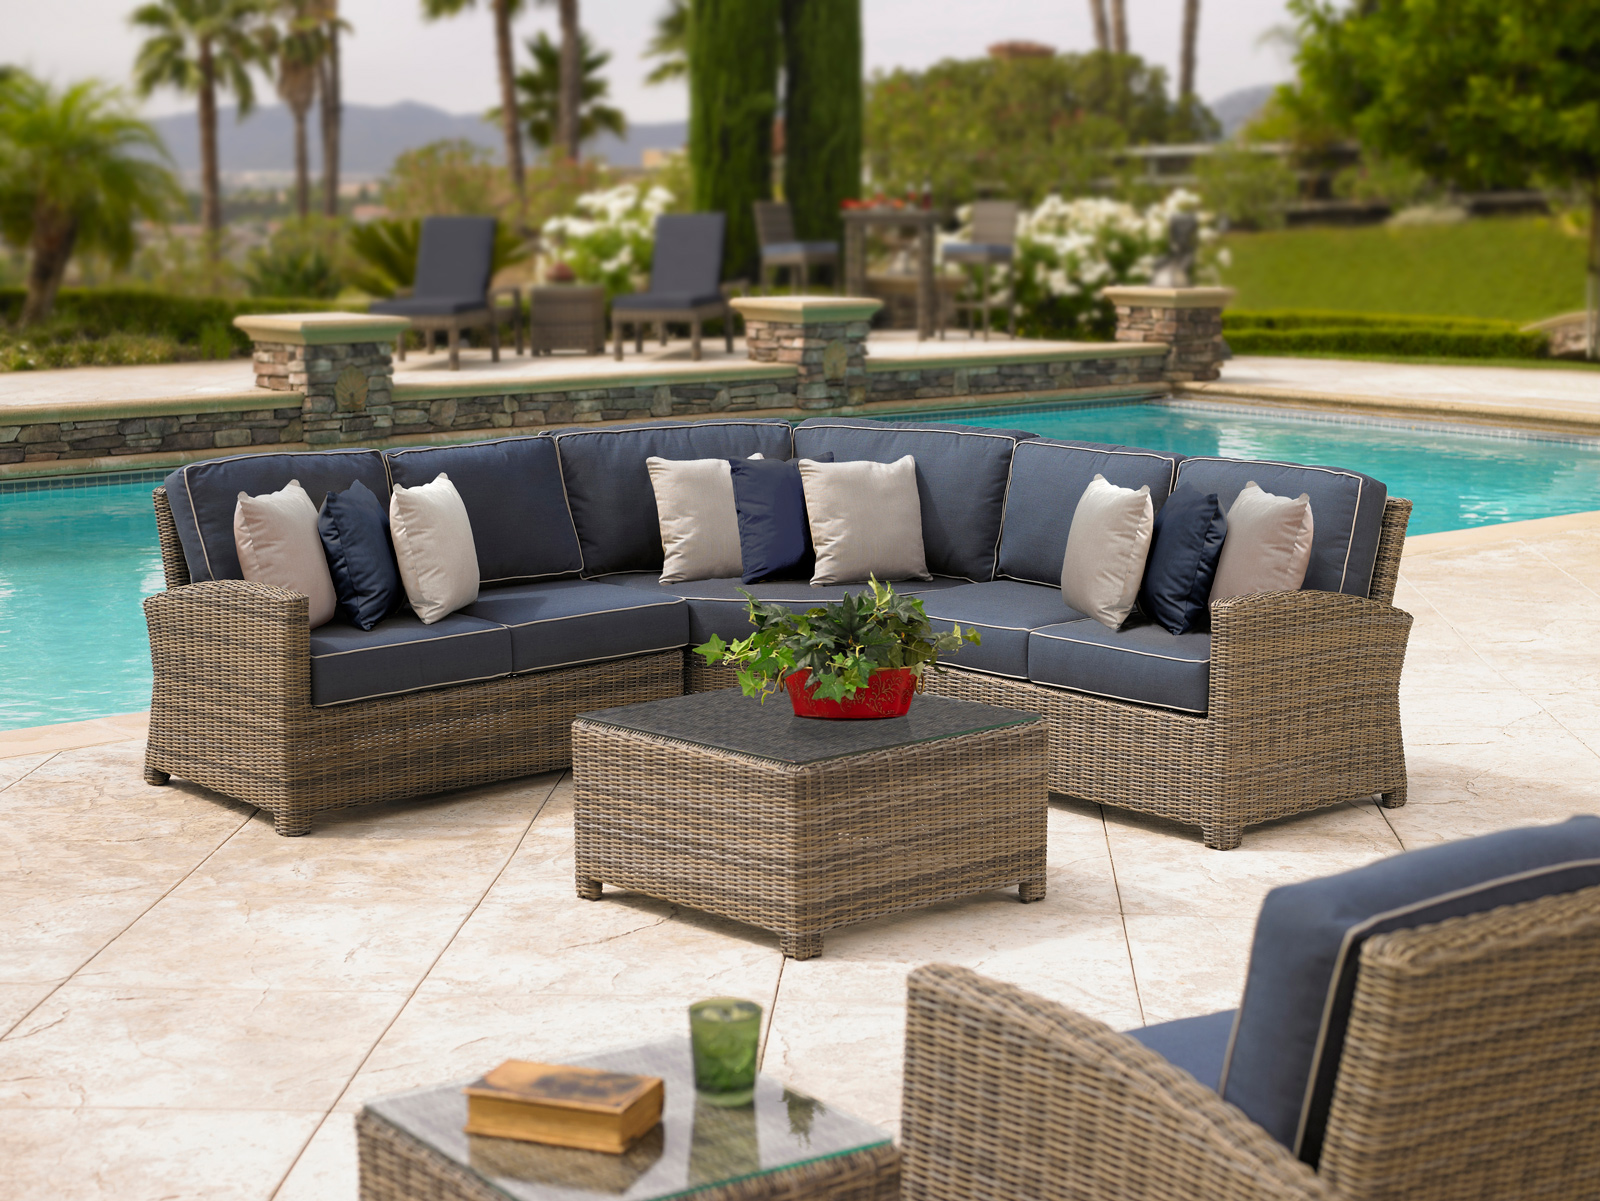 Catalina commercial outdoor furniture at low prices for Outdoor furniture wicker